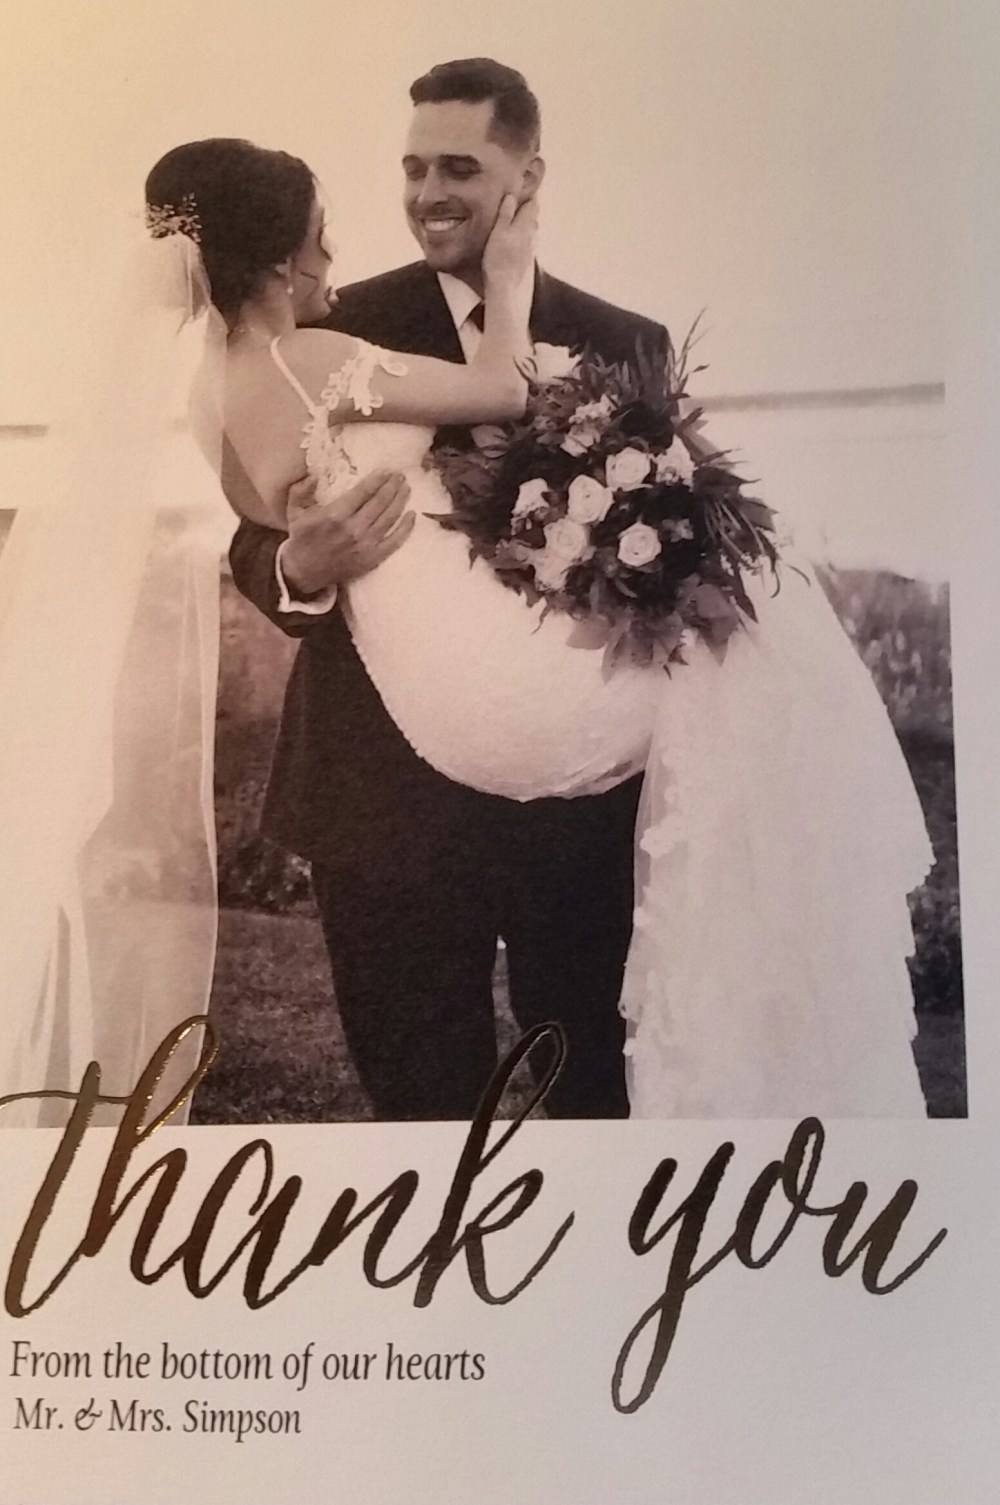 A Thank You Note to a Grateful Officiant!